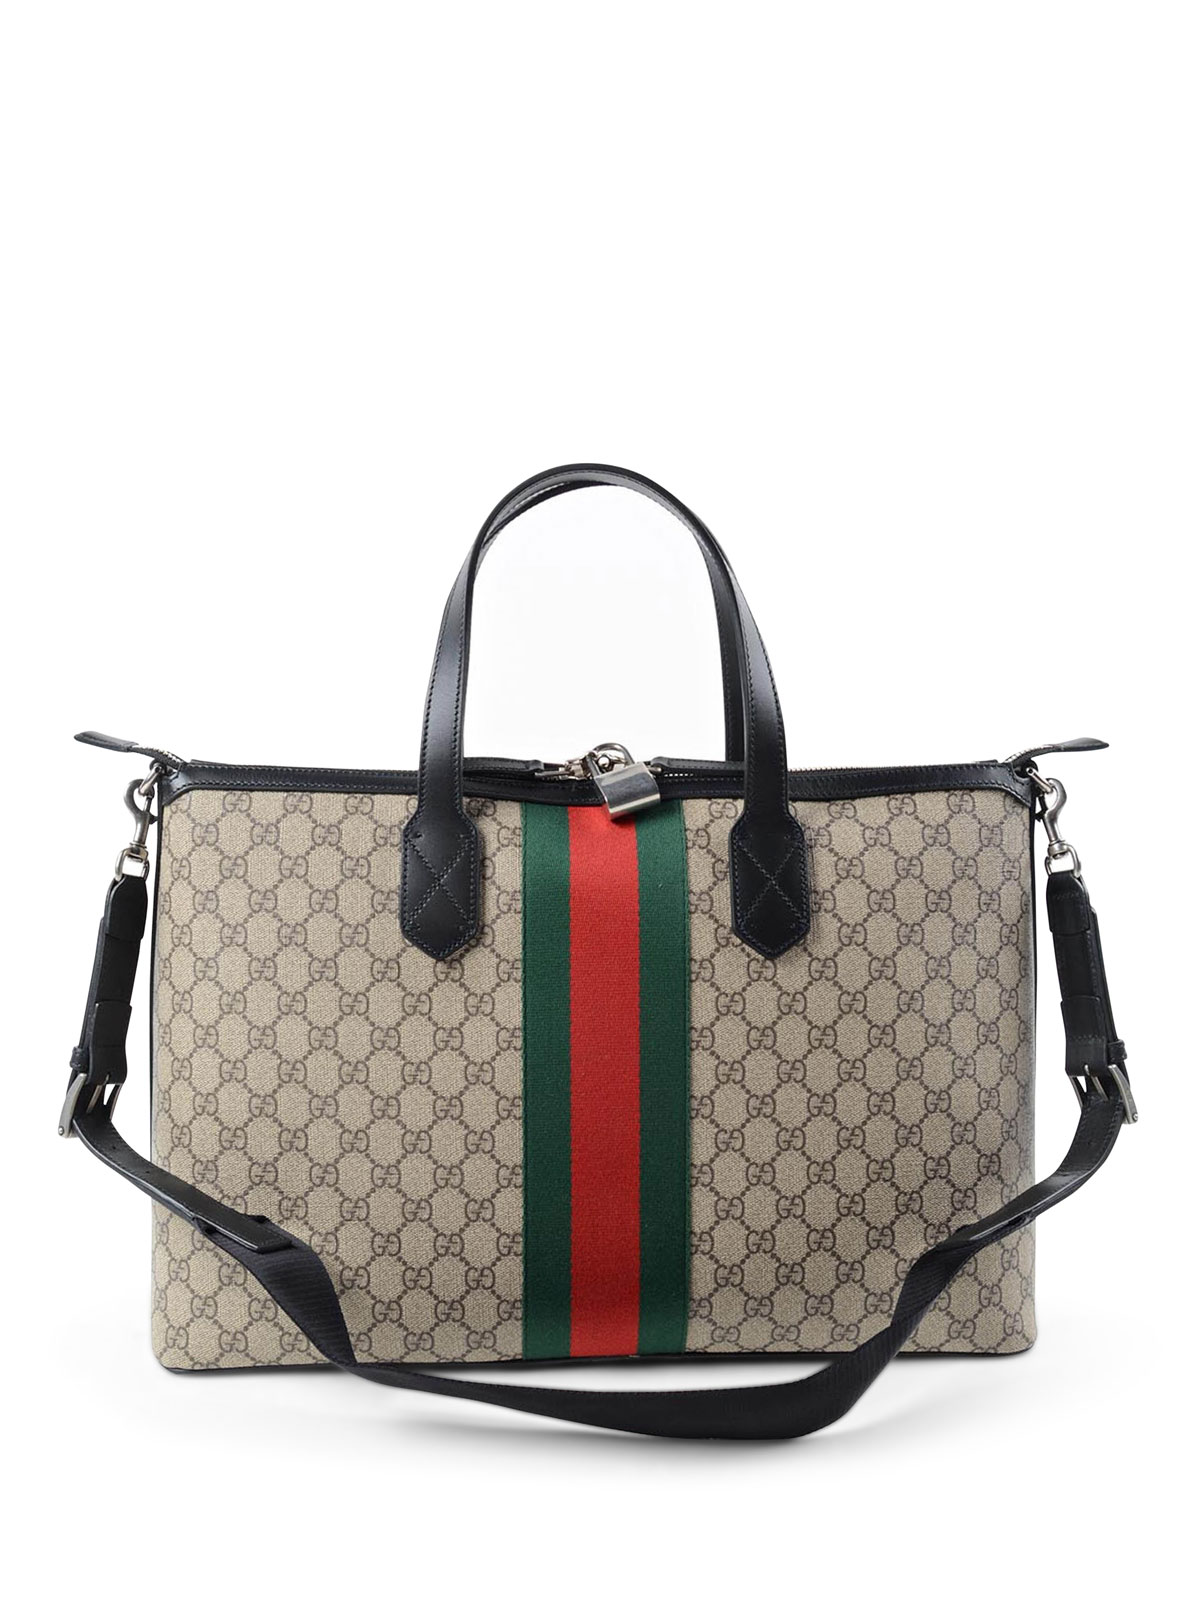 cacf2bd25 iKRIX GUCCI: Luggage & Travel bags - GG Supreme canvas duffle bag